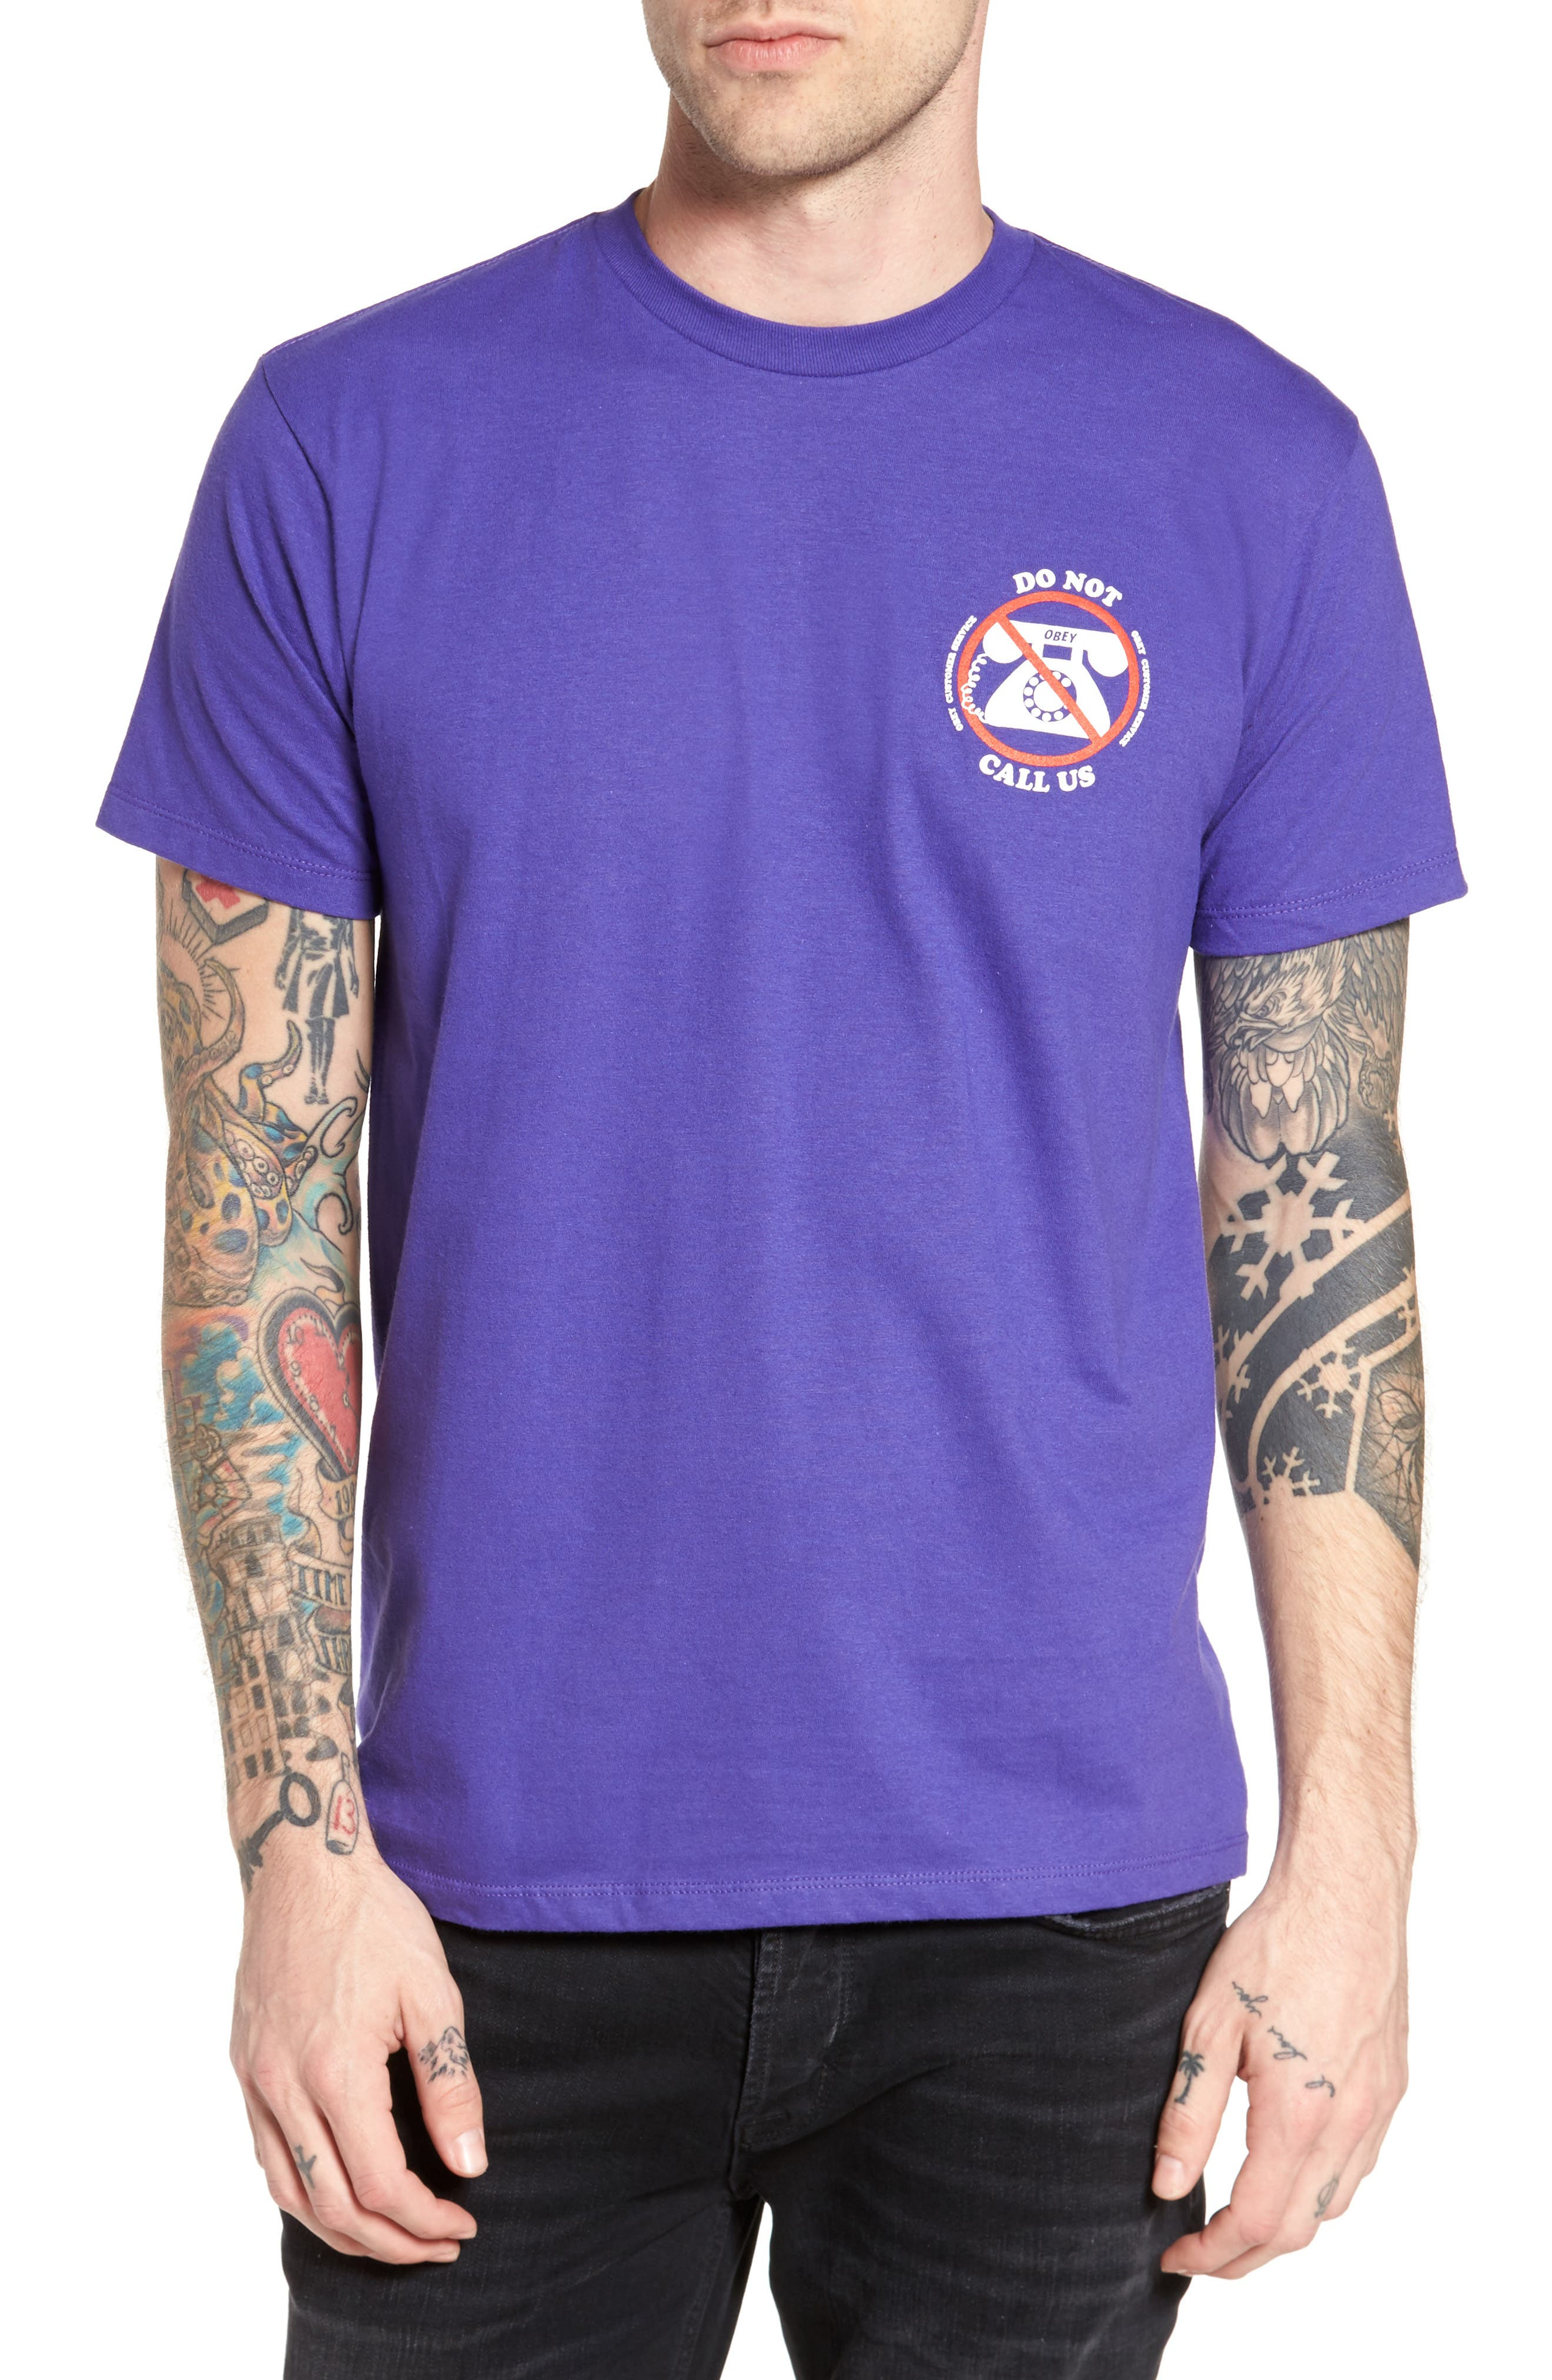 Obey Customer Service Premium Graphic T-Shirt